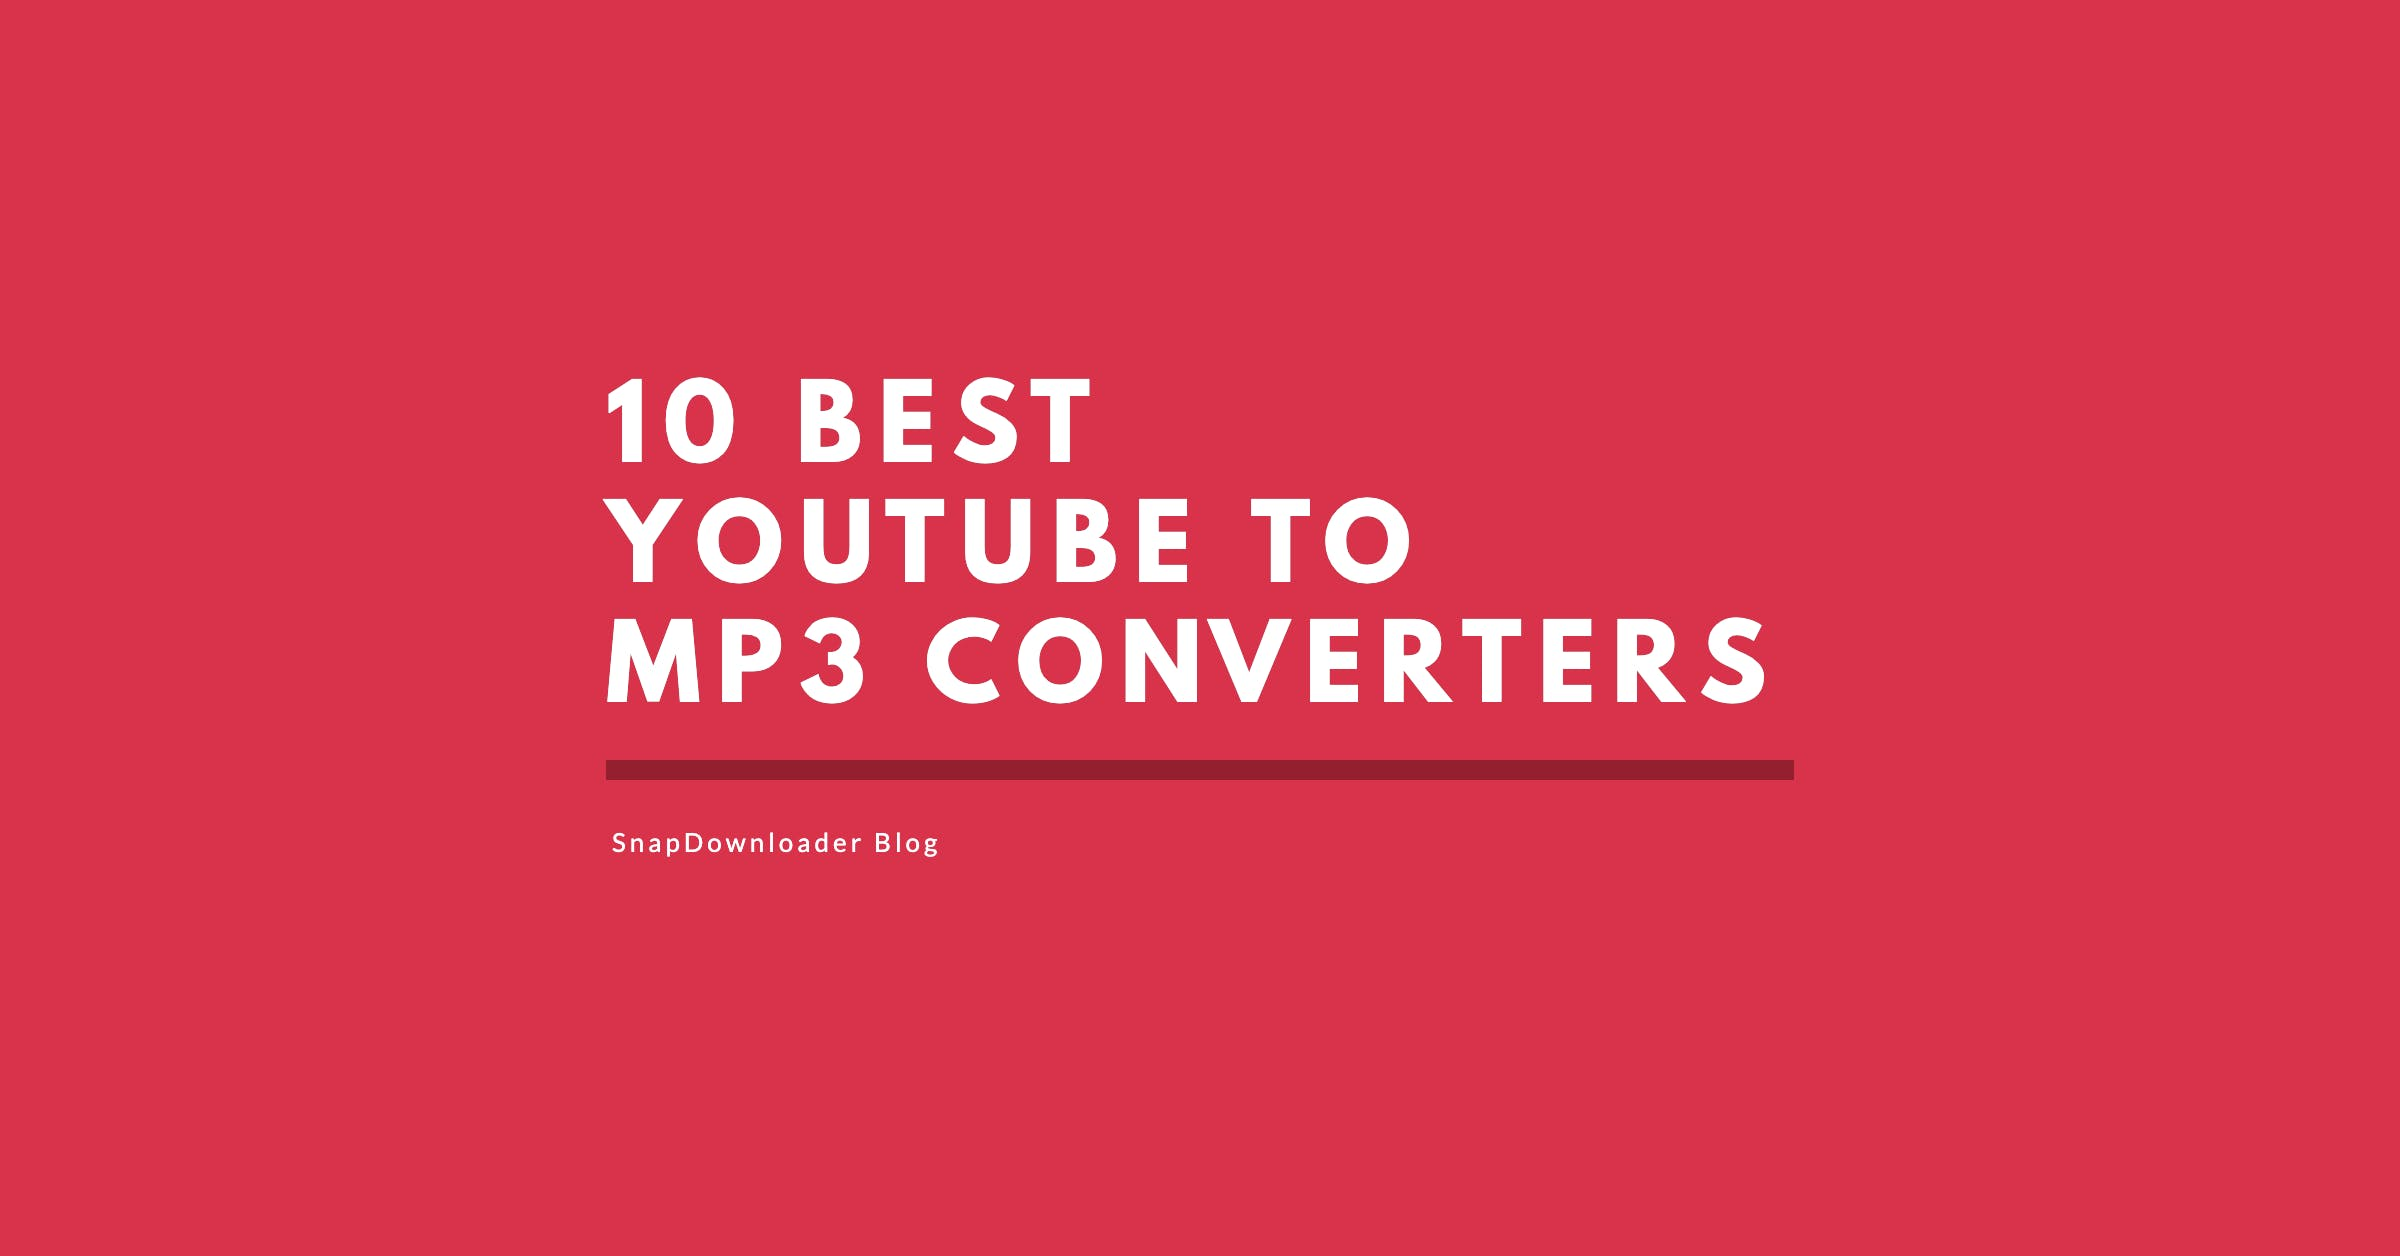 10 Best Free YouTube to MP3 Converters